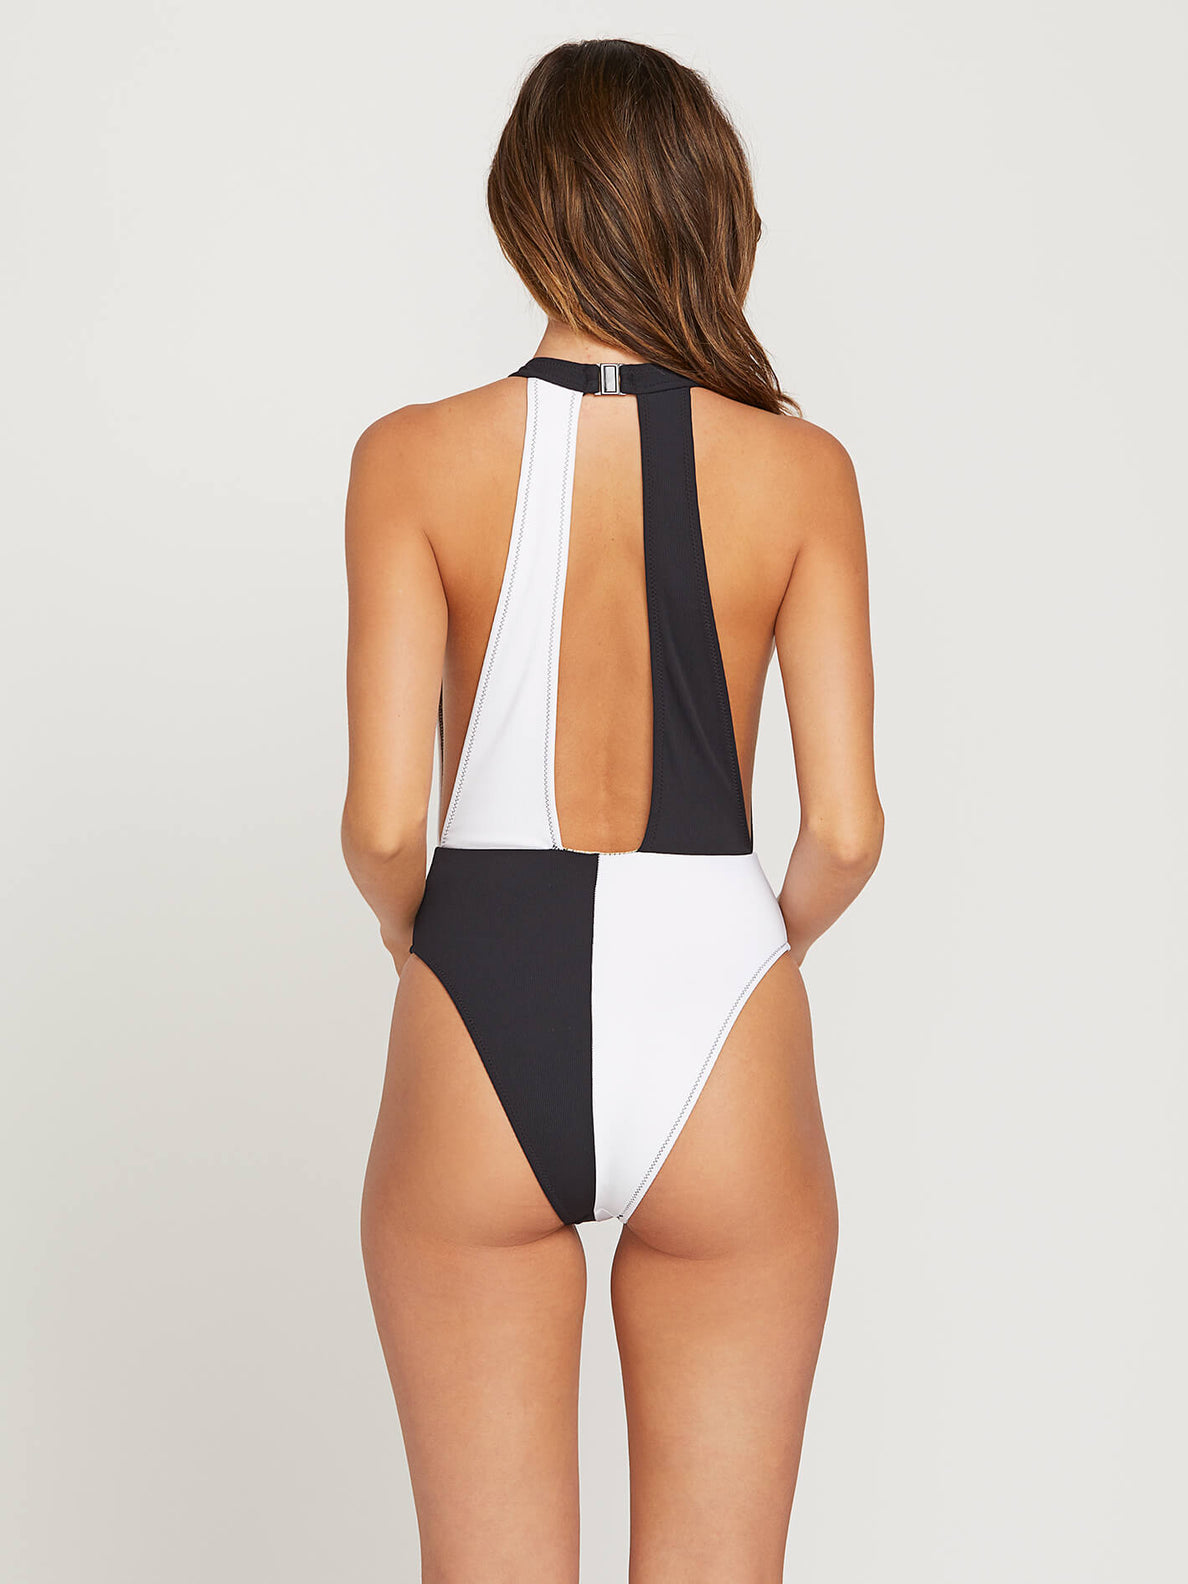 Simply Rib 1 Piece In Black, Back View